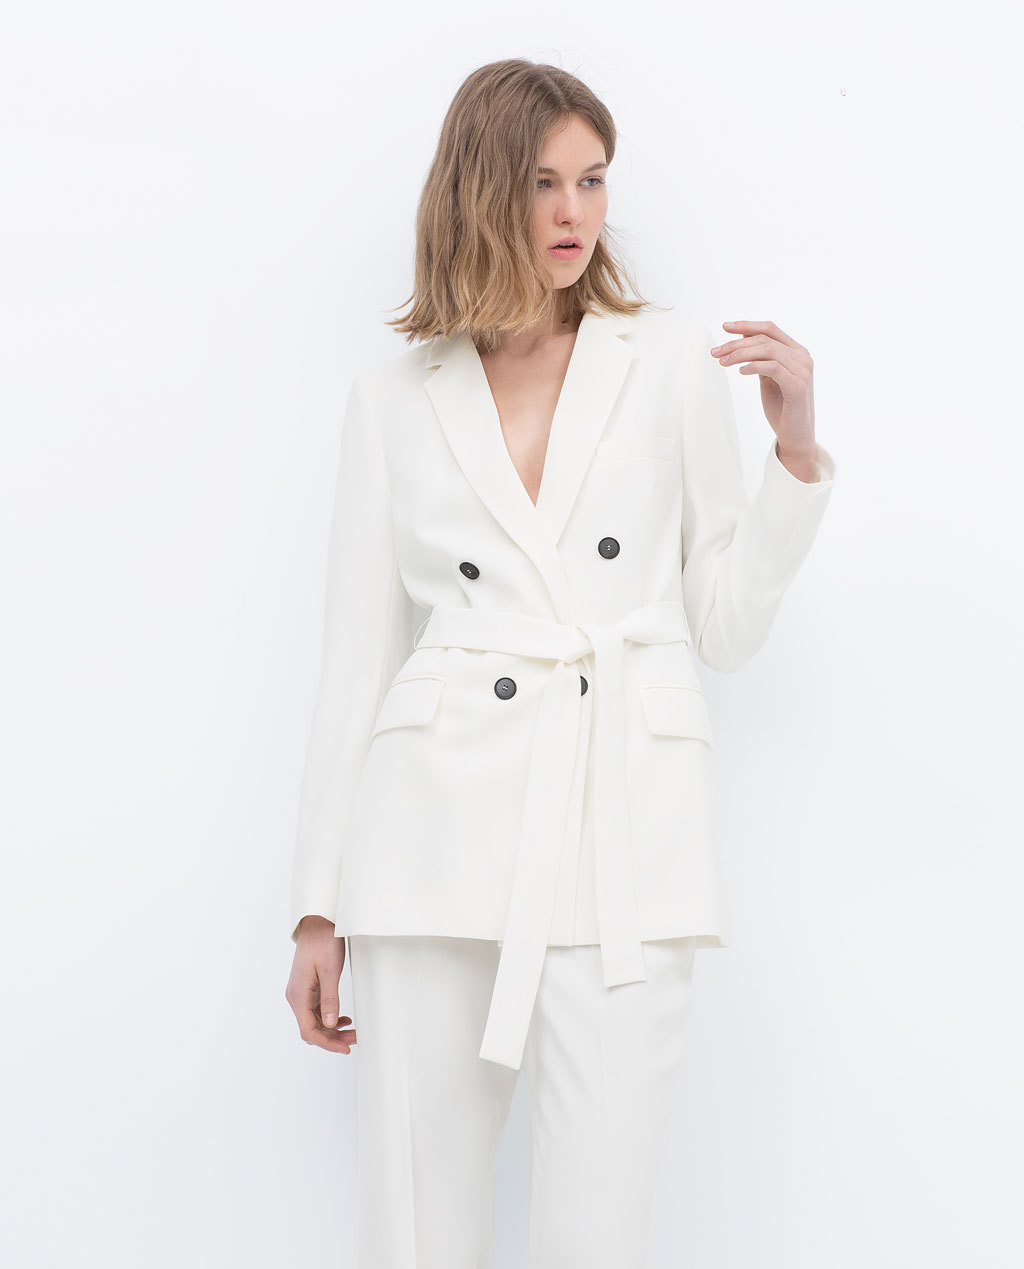 Belted Blazer - pattern: plain; style: belted jacket; length: below the bottom; collar: standard lapel/rever collar; predominant colour: white; occasions: casual, creative work; fit: tailored/fitted; fibres: polyester/polyamide - 100%; waist detail: belted waist/tie at waist/drawstring; sleeve length: long sleeve; sleeve style: standard; texture group: cotton feel fabrics; collar break: medium; pattern type: fabric; season: s/s 2015; wardrobe: basic